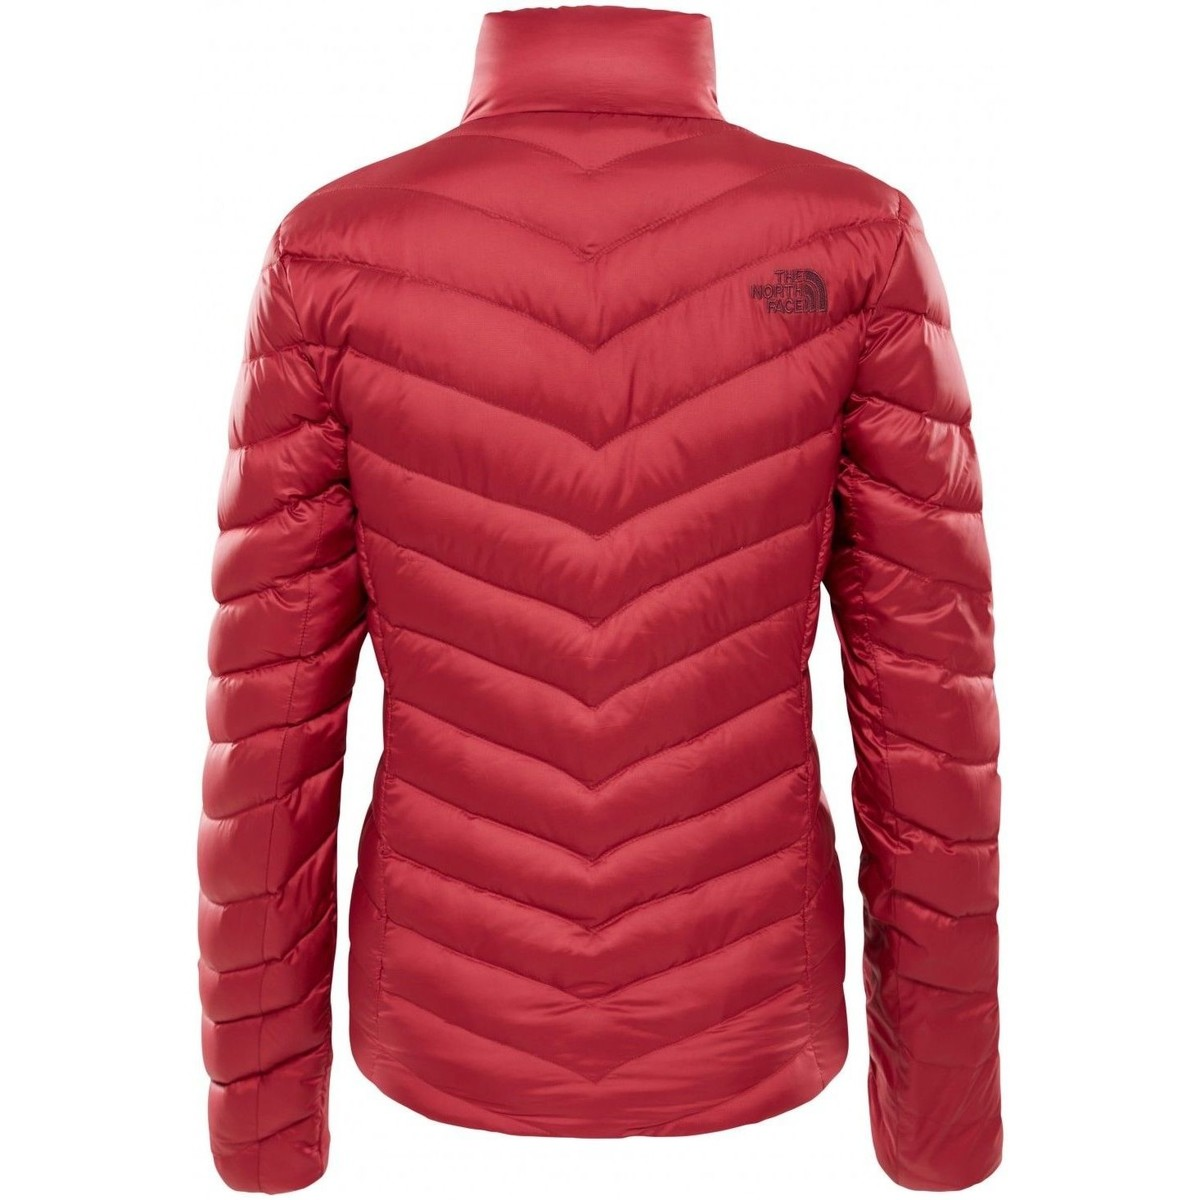 Blouson Trevail The 700 Women's North Face Jacket Brm3yp 80wmNnvyO